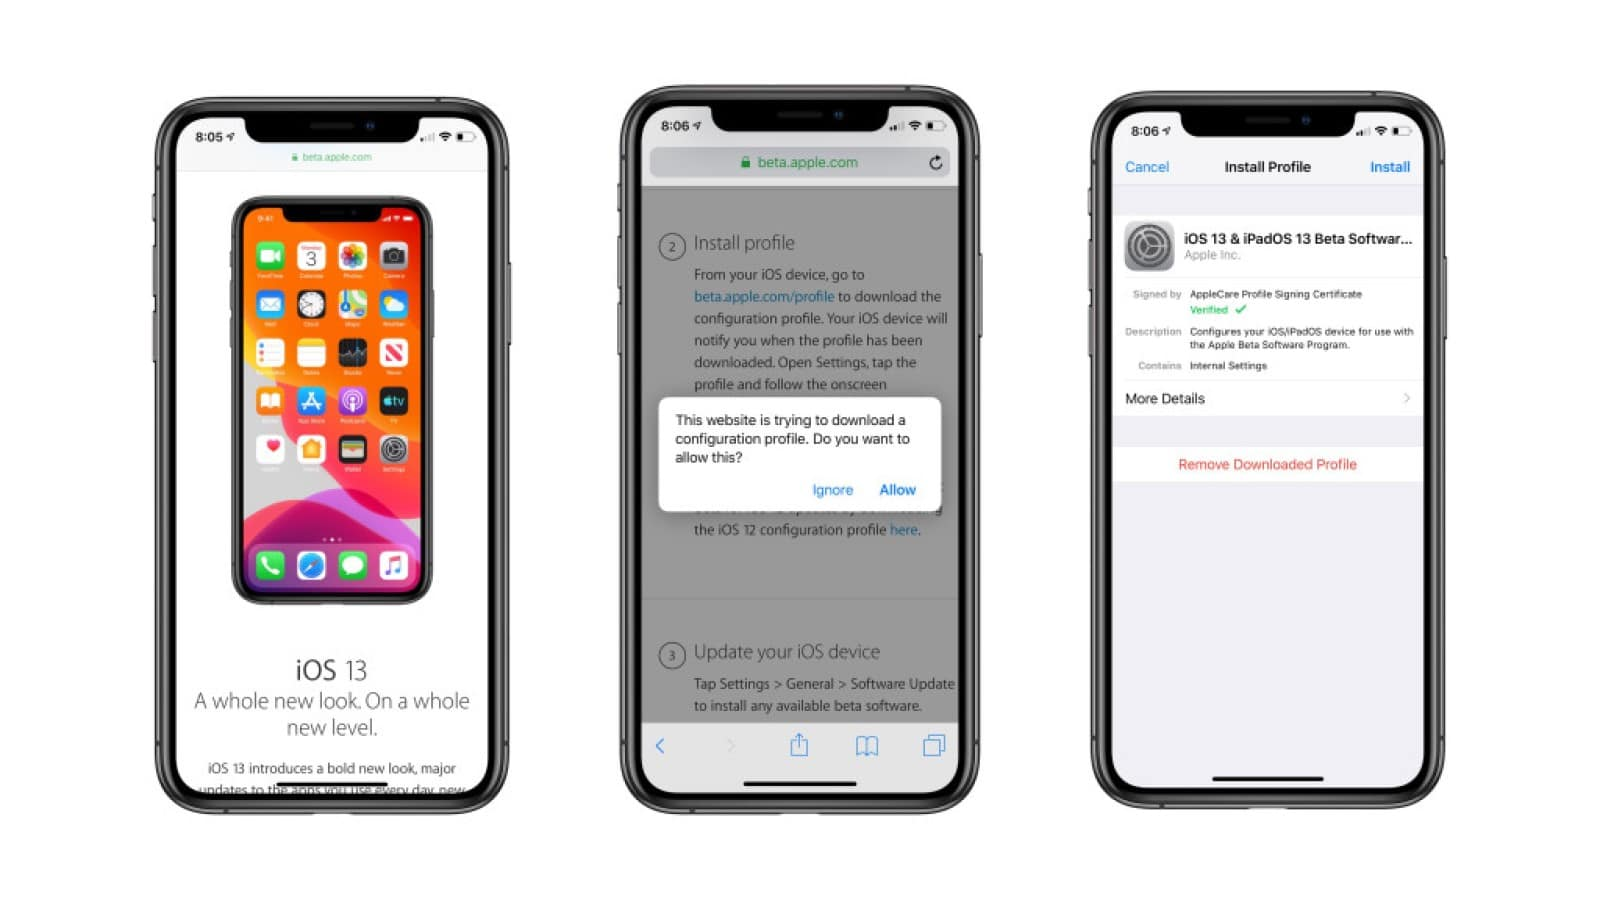 iOS 13 sign up process screenshots